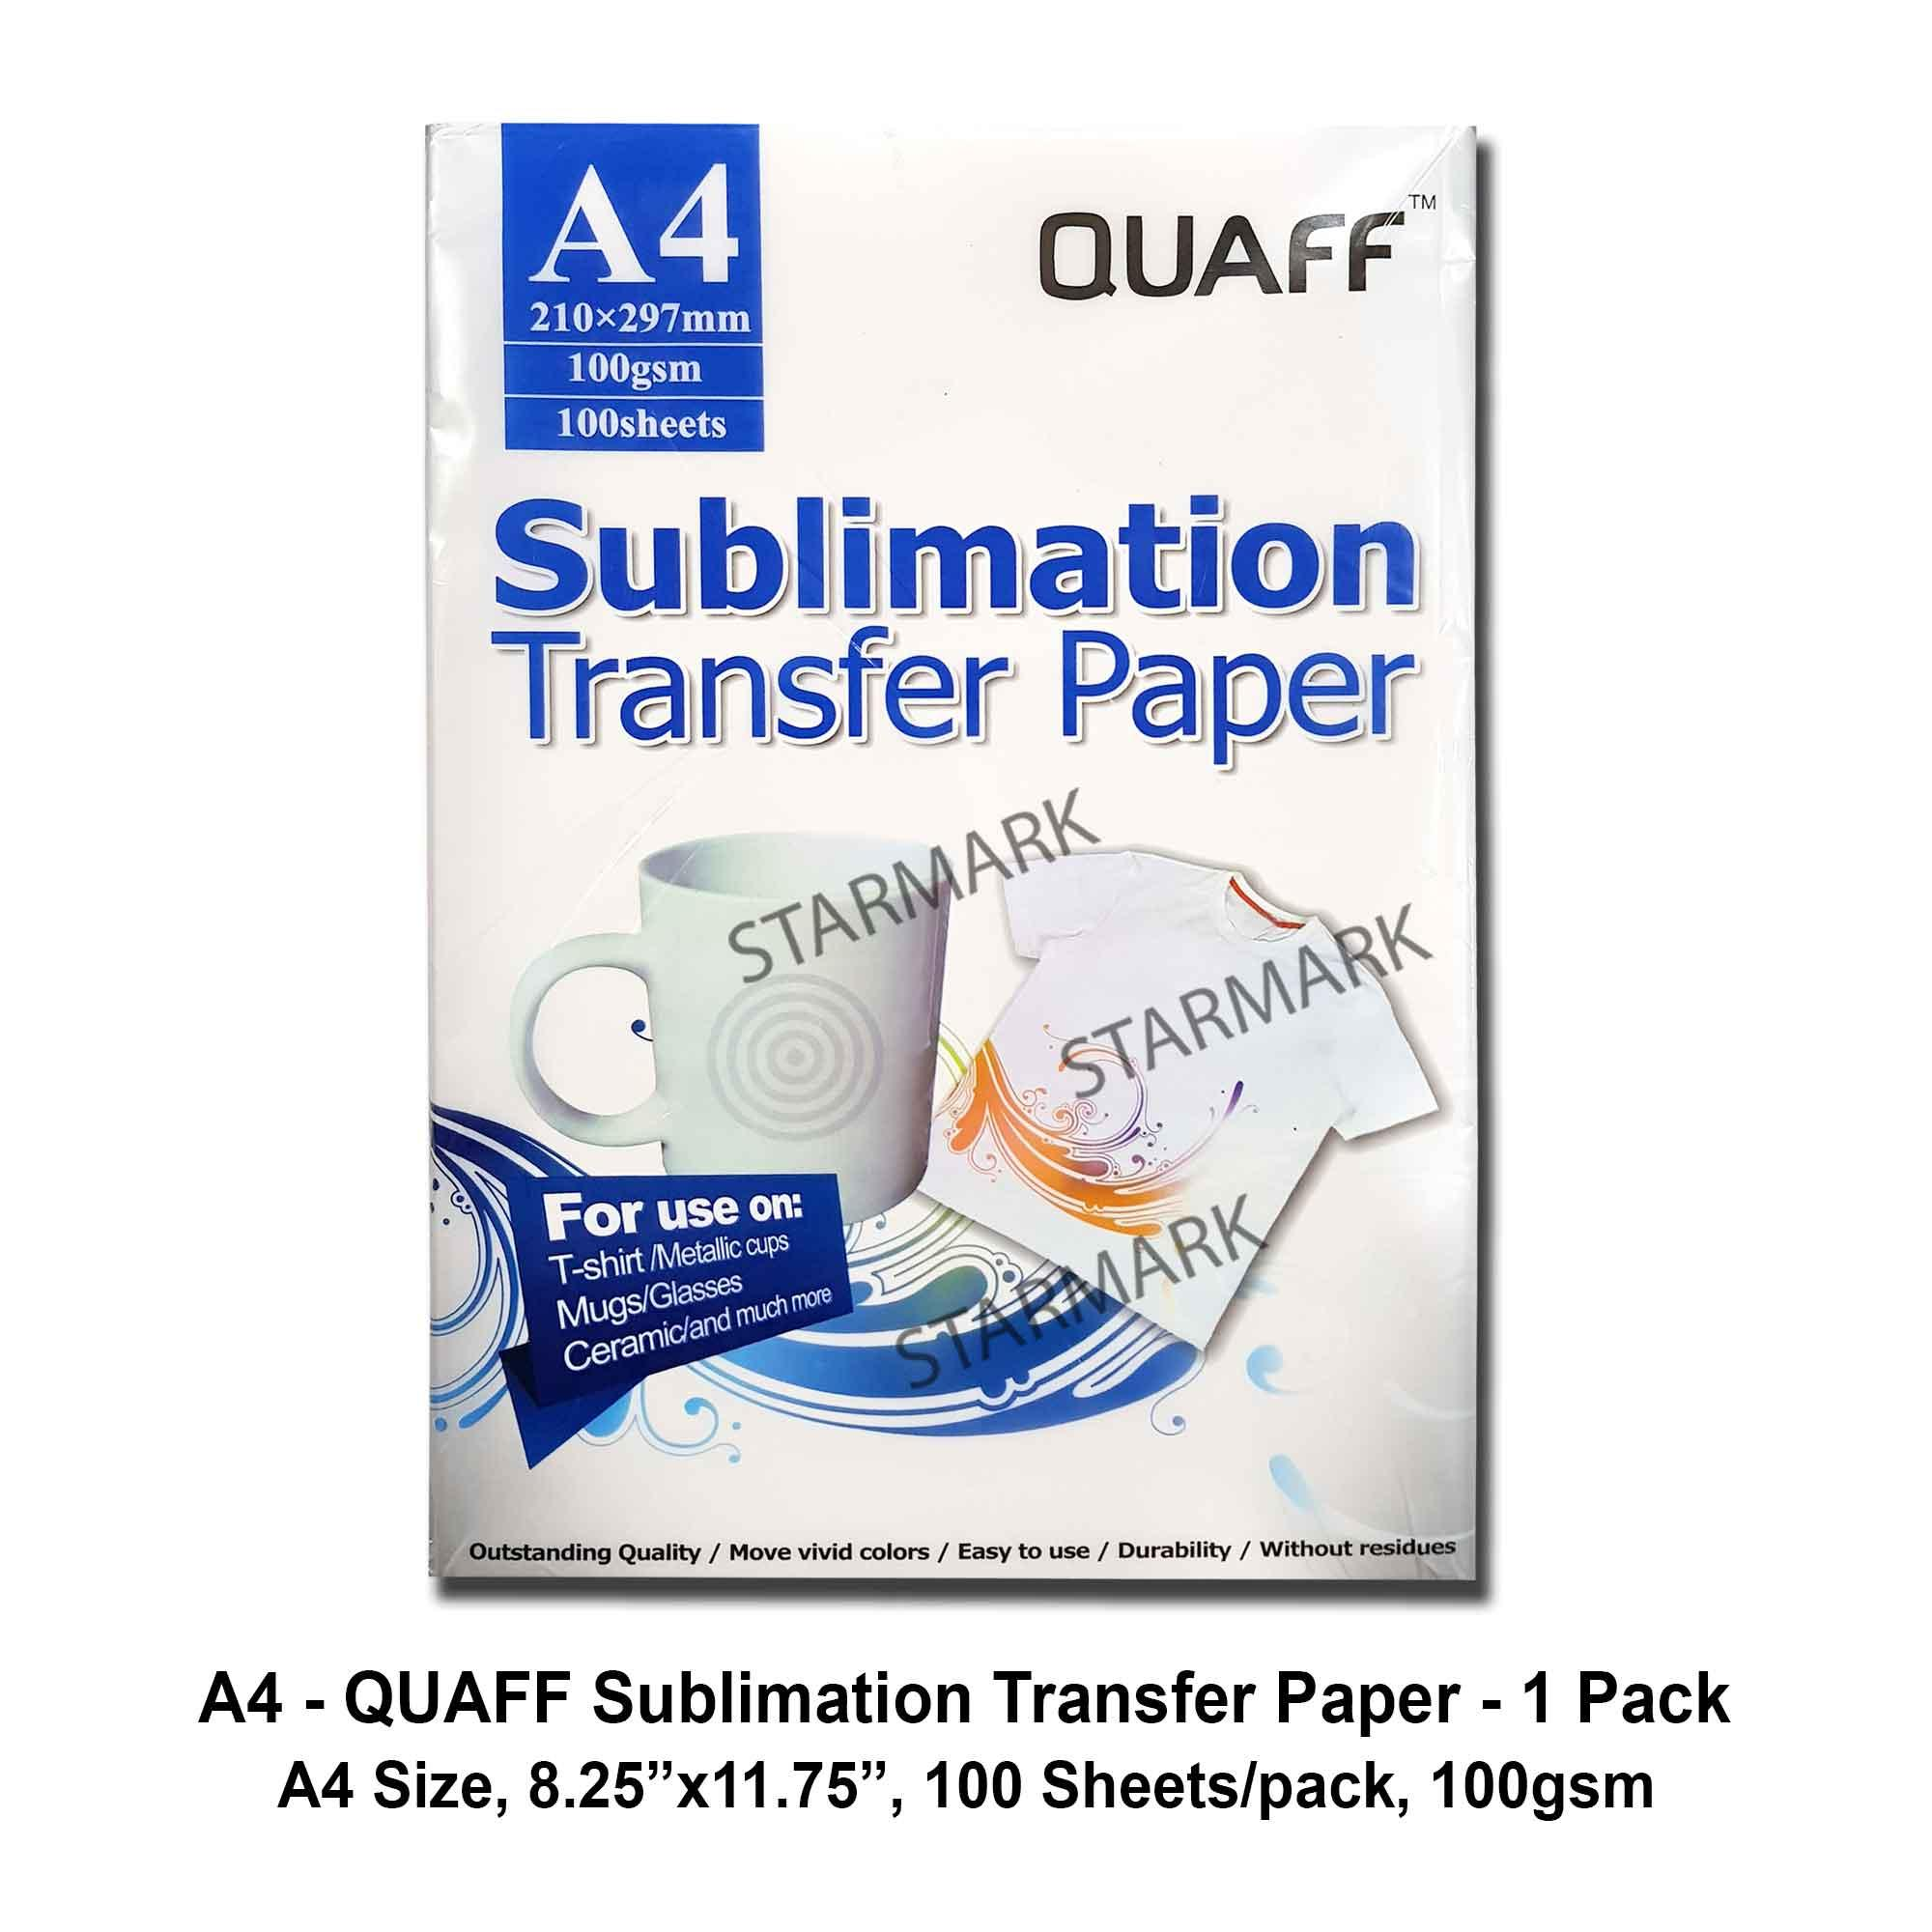 1 Pack Quaff Sublimation Paper Transfer Papers A4 Size, 8.25x11.75 Inches, 100 Sheets/pack, 100gsm, For Mugs, Tshirts, Etc. By Starmark Enterprises.